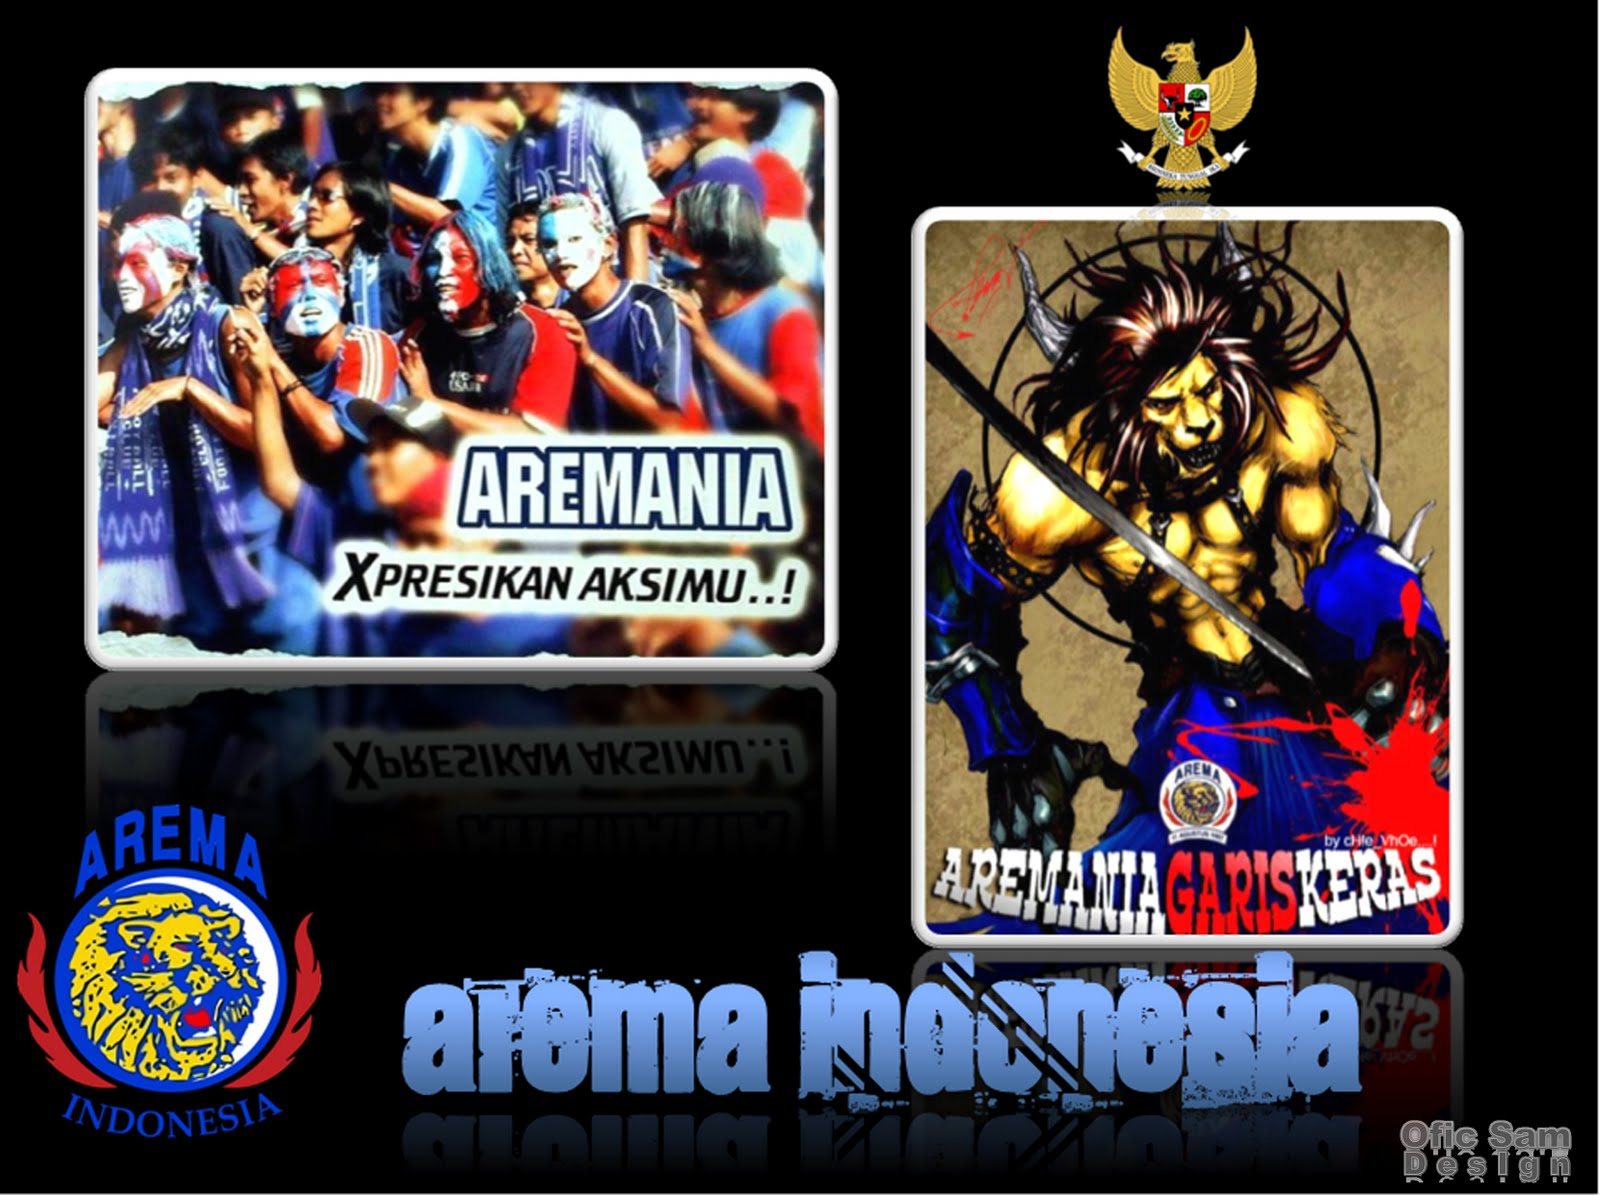 http://3.bp.blogspot.com/-vNQD3X5OrUs/Tb-KX59LlgI/AAAAAAAAAJ8/yJh4RB-kL20/s1600/wallpaper+arema+indonesia+mei+2011+by+ofic+sam+_boy_gassipers@yahoo.co.id+%2812%29.jpg